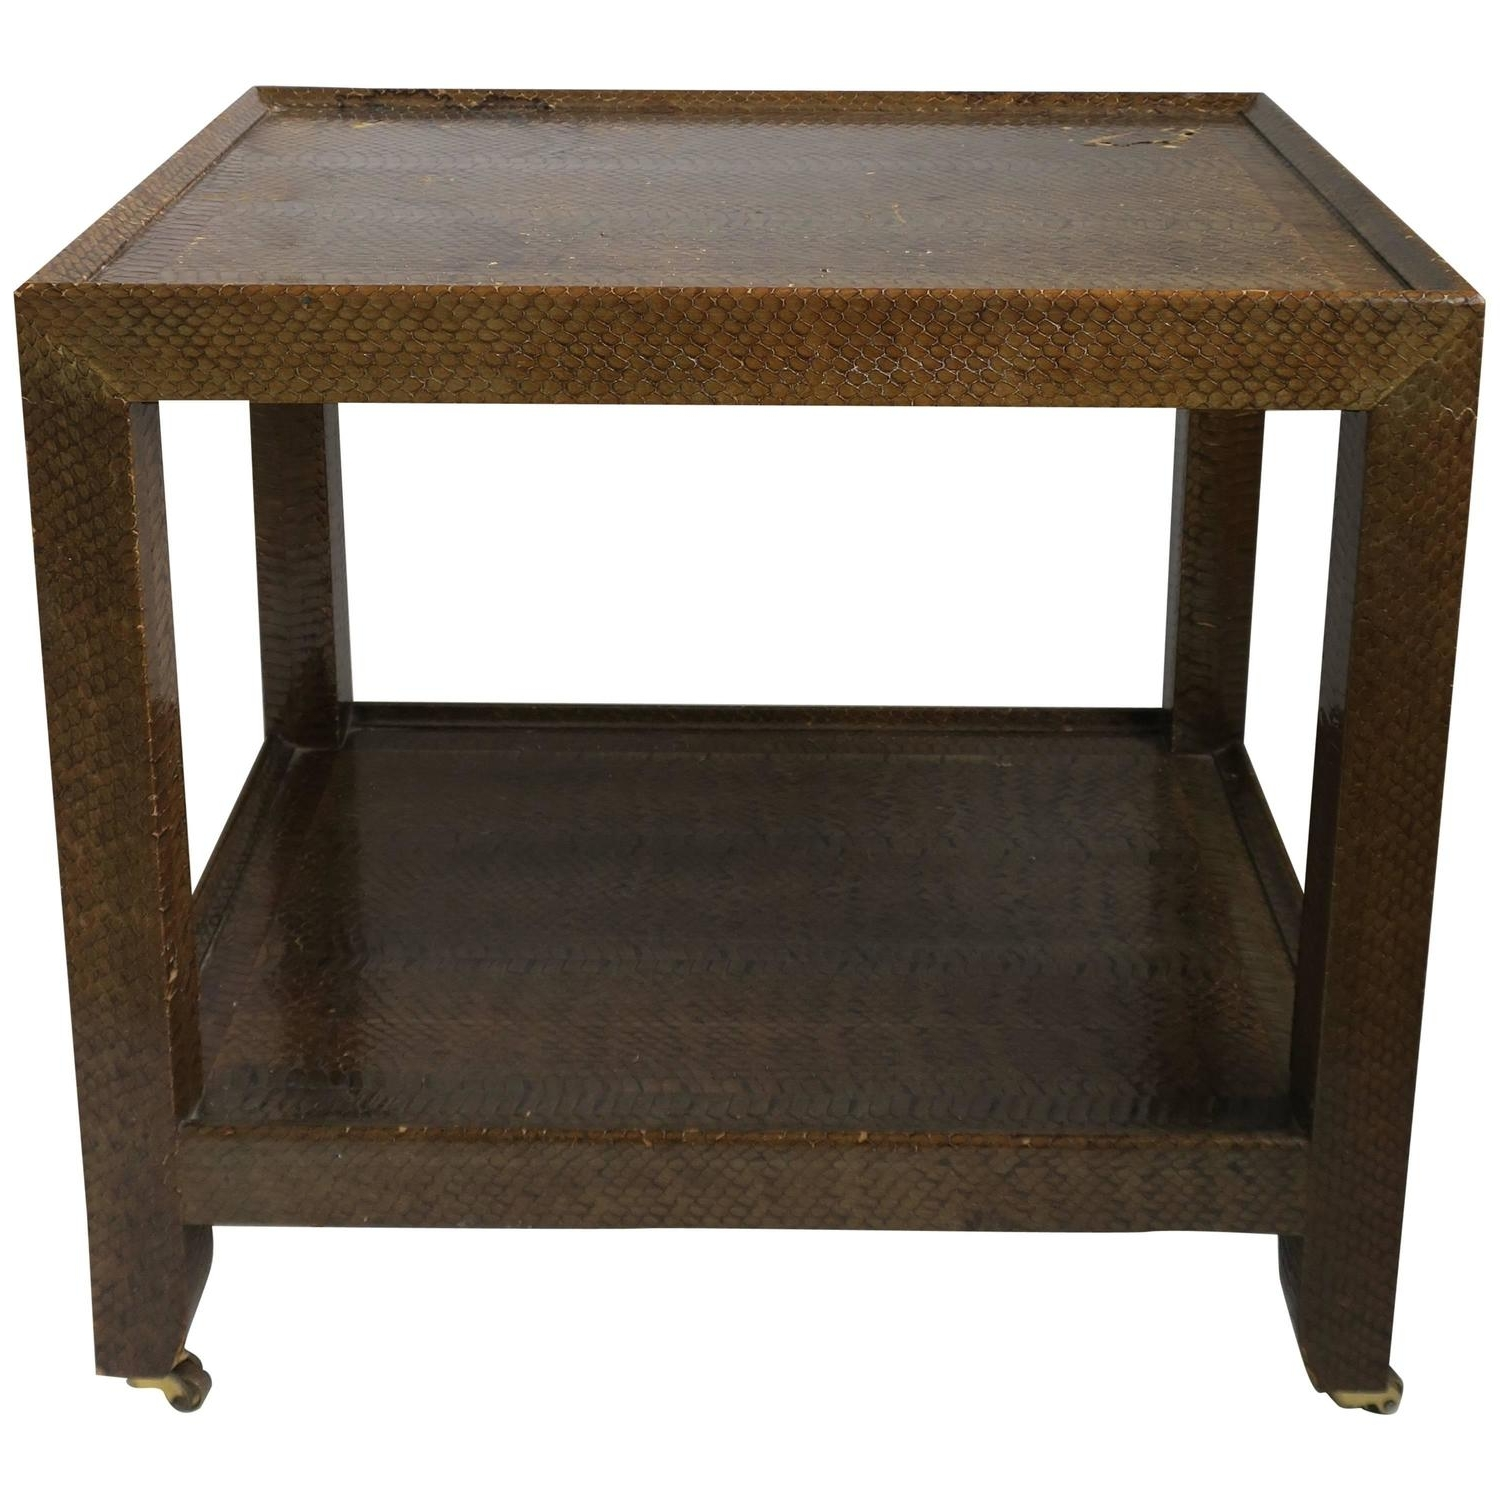 Post Modern Side Tables – 148 For Sale At 1Stdibs Inside Well Liked Khacha Coffee Tables (View 14 of 20)